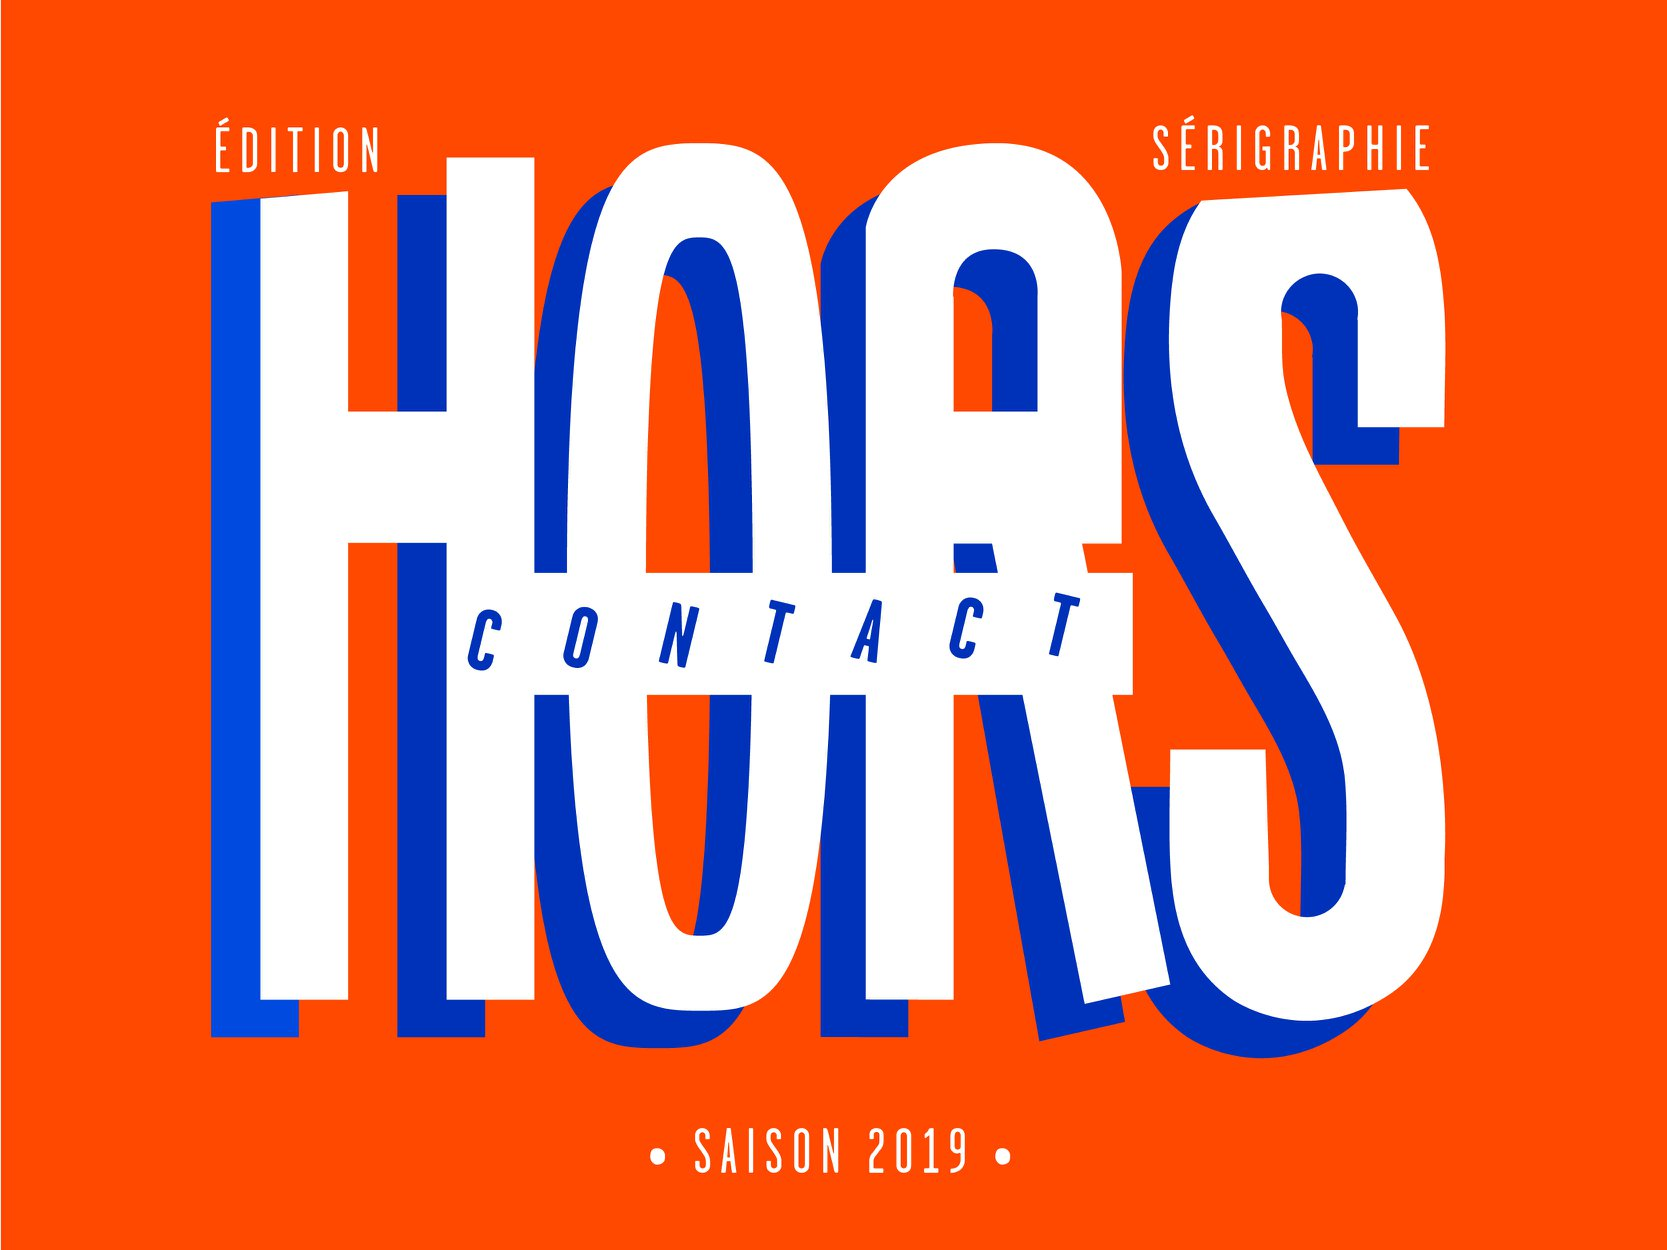 hors-contact-serigraphie-paris-atelier-fwells-edition